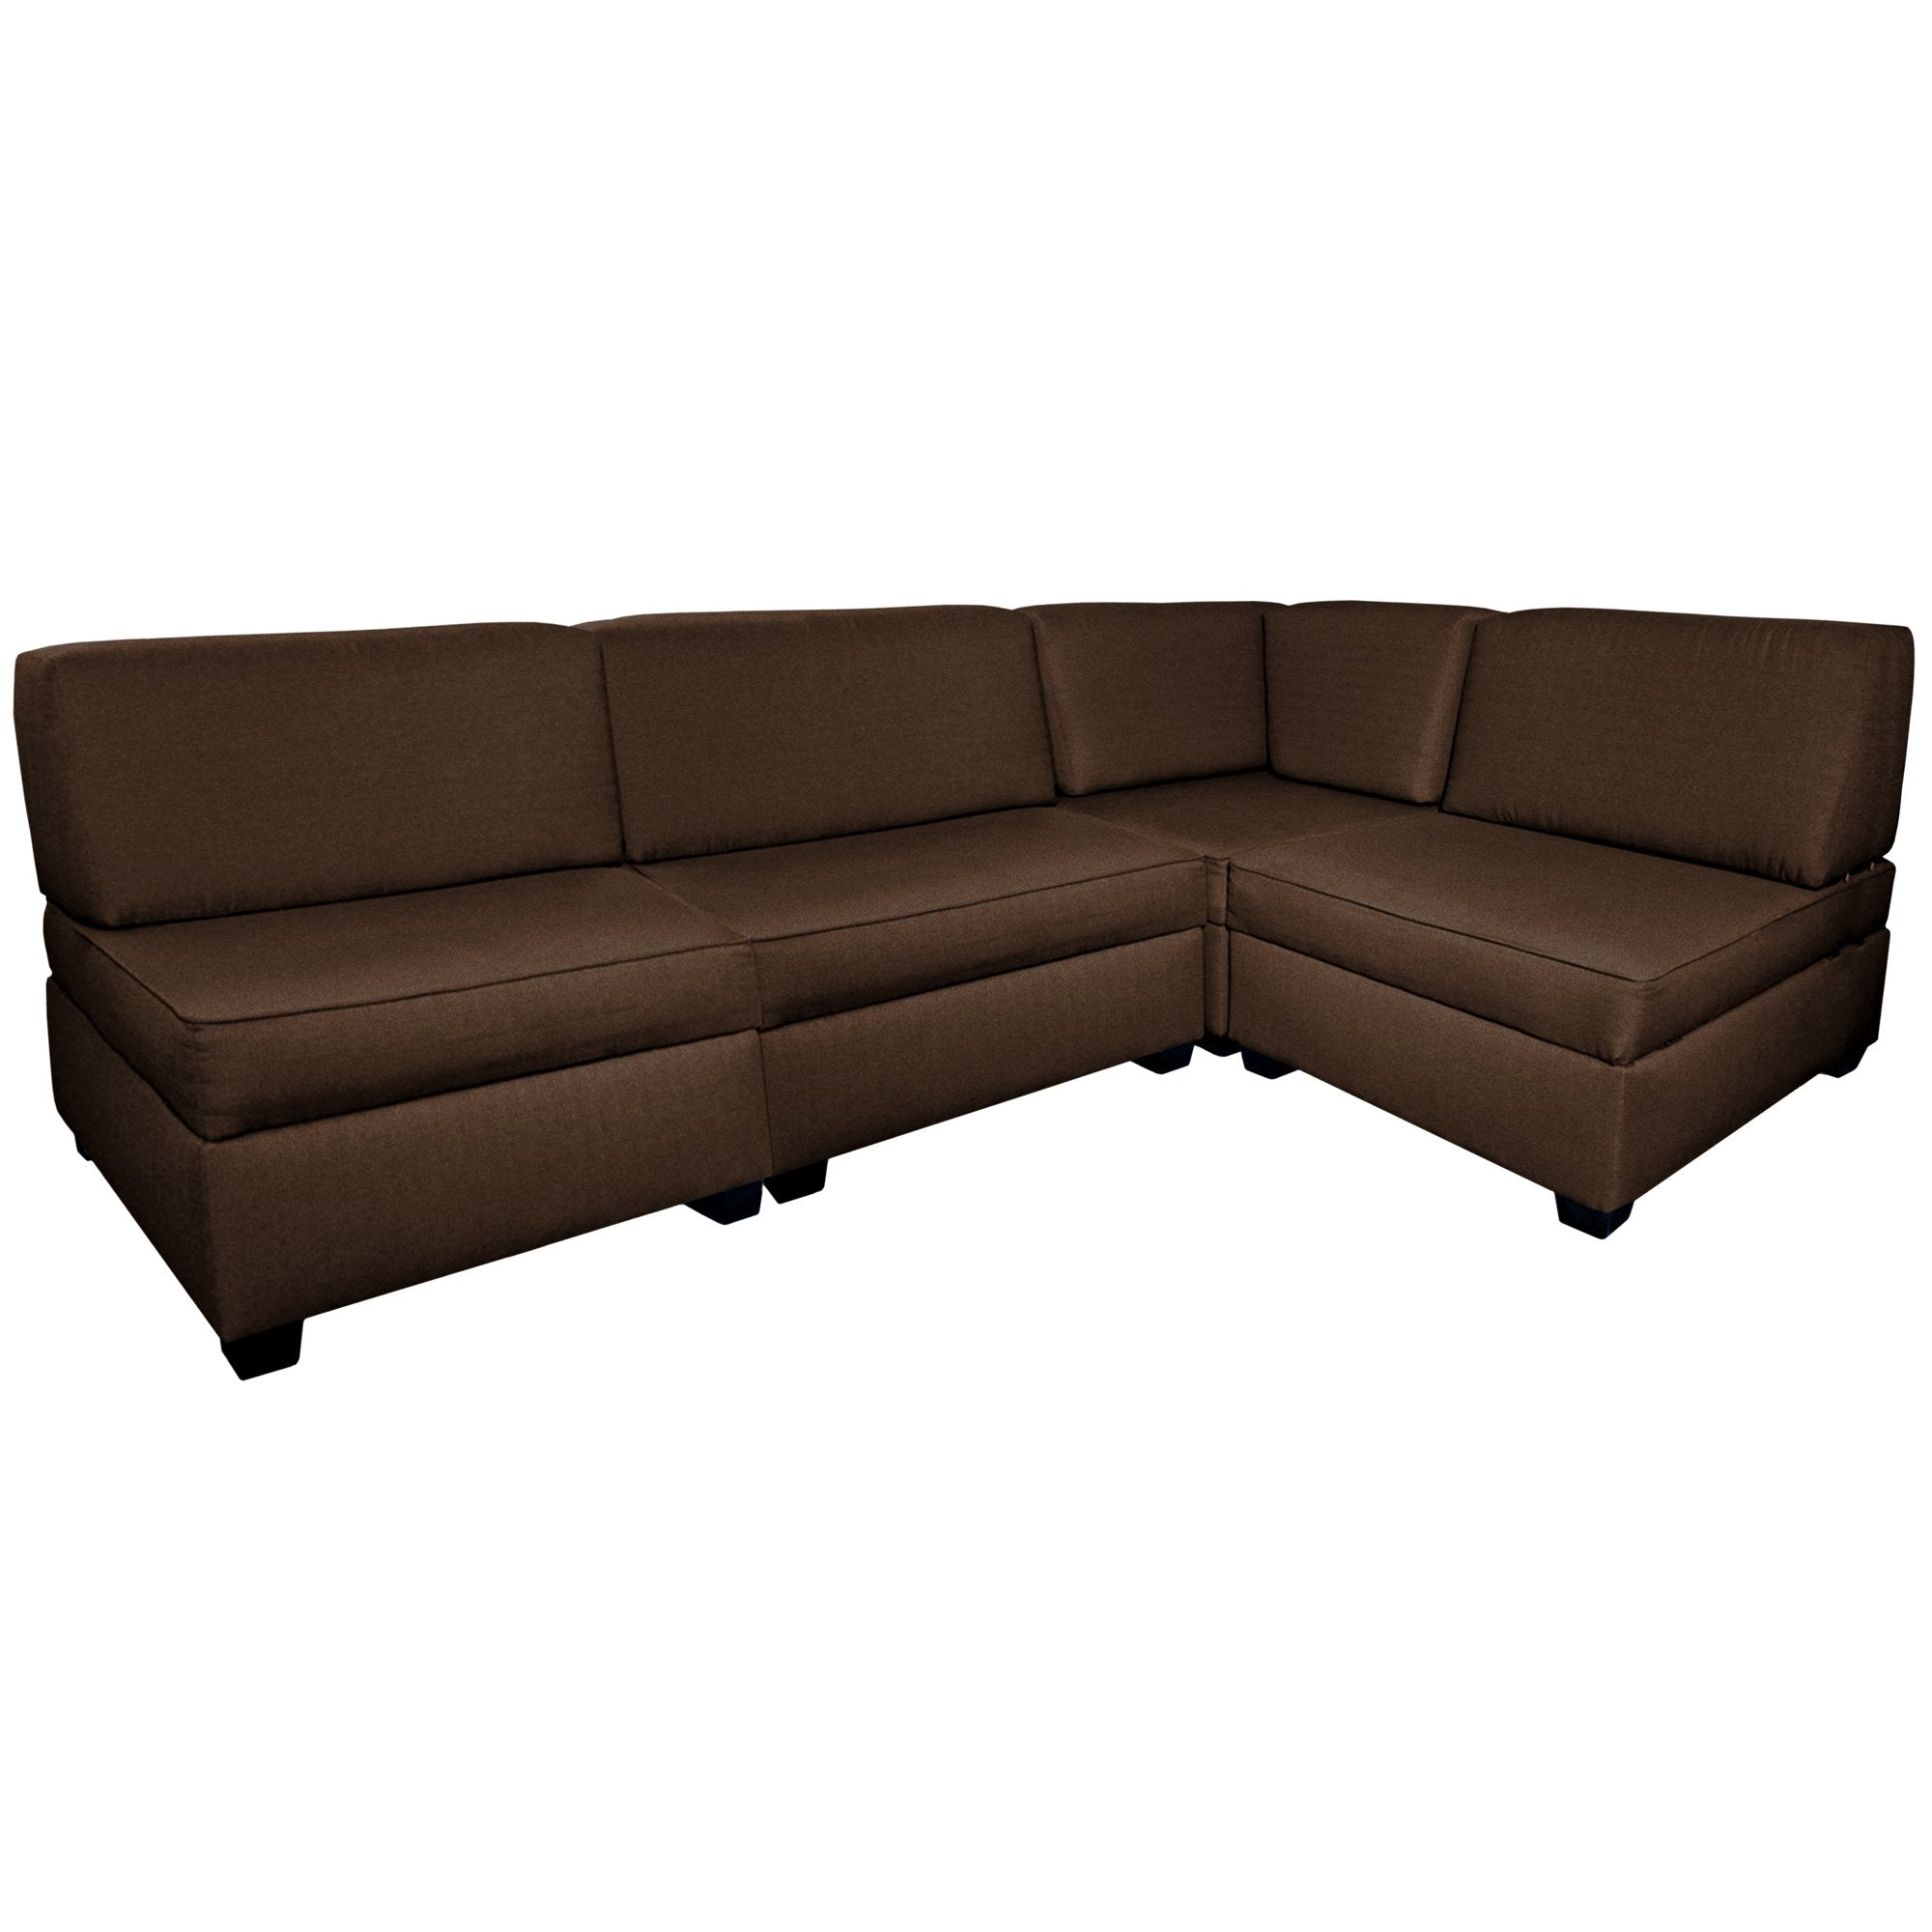 Duobeds Corner Modular Sectional Couch – DuoBed Store